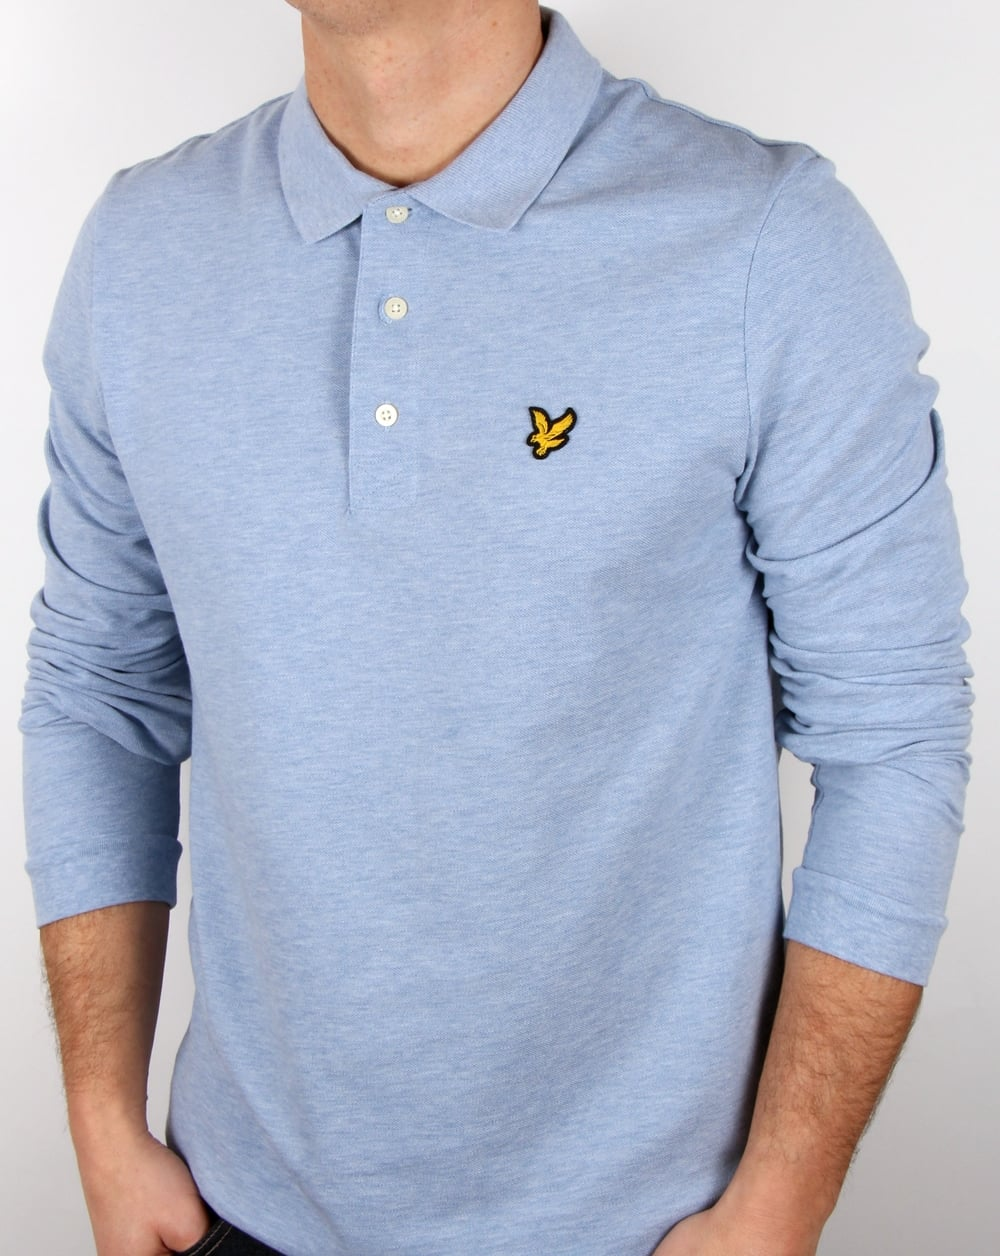 lyle and scott long sleeve polo shirt blue marl men 39 s pique cotton. Black Bedroom Furniture Sets. Home Design Ideas